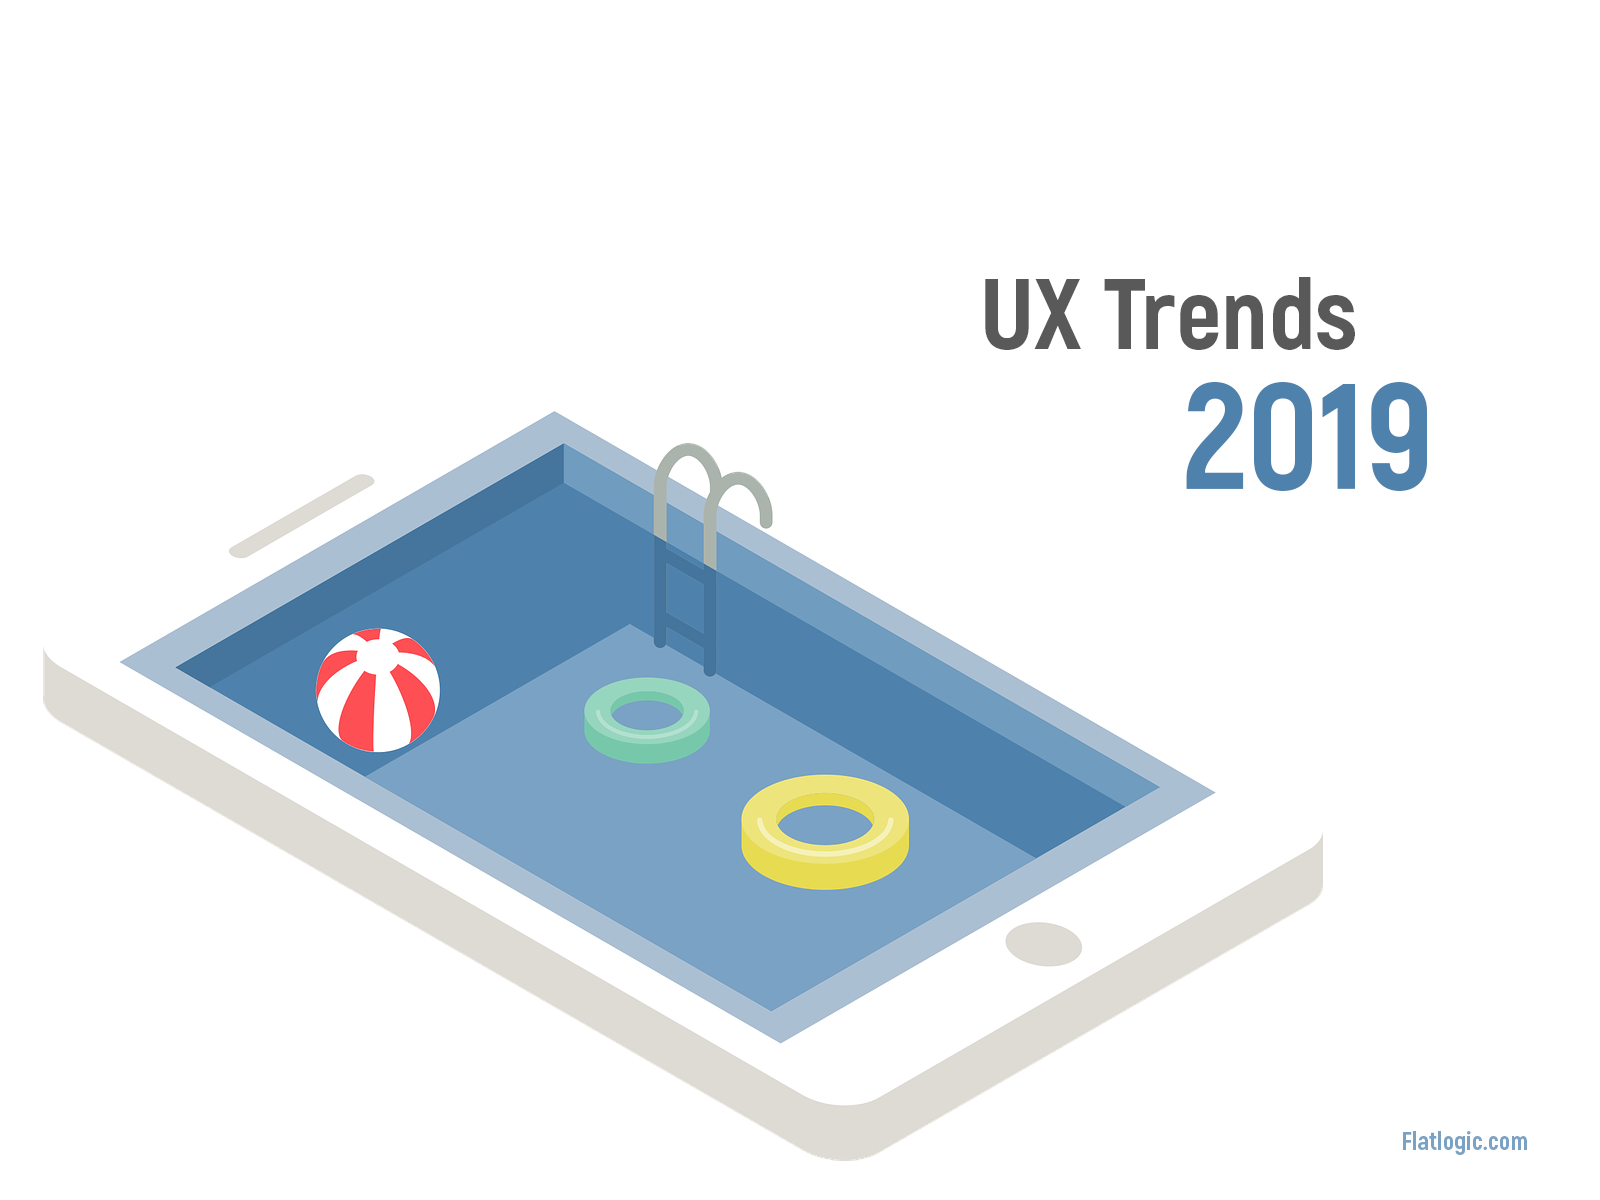 Top UX Trends in 2019-2020 for Mobile Apps